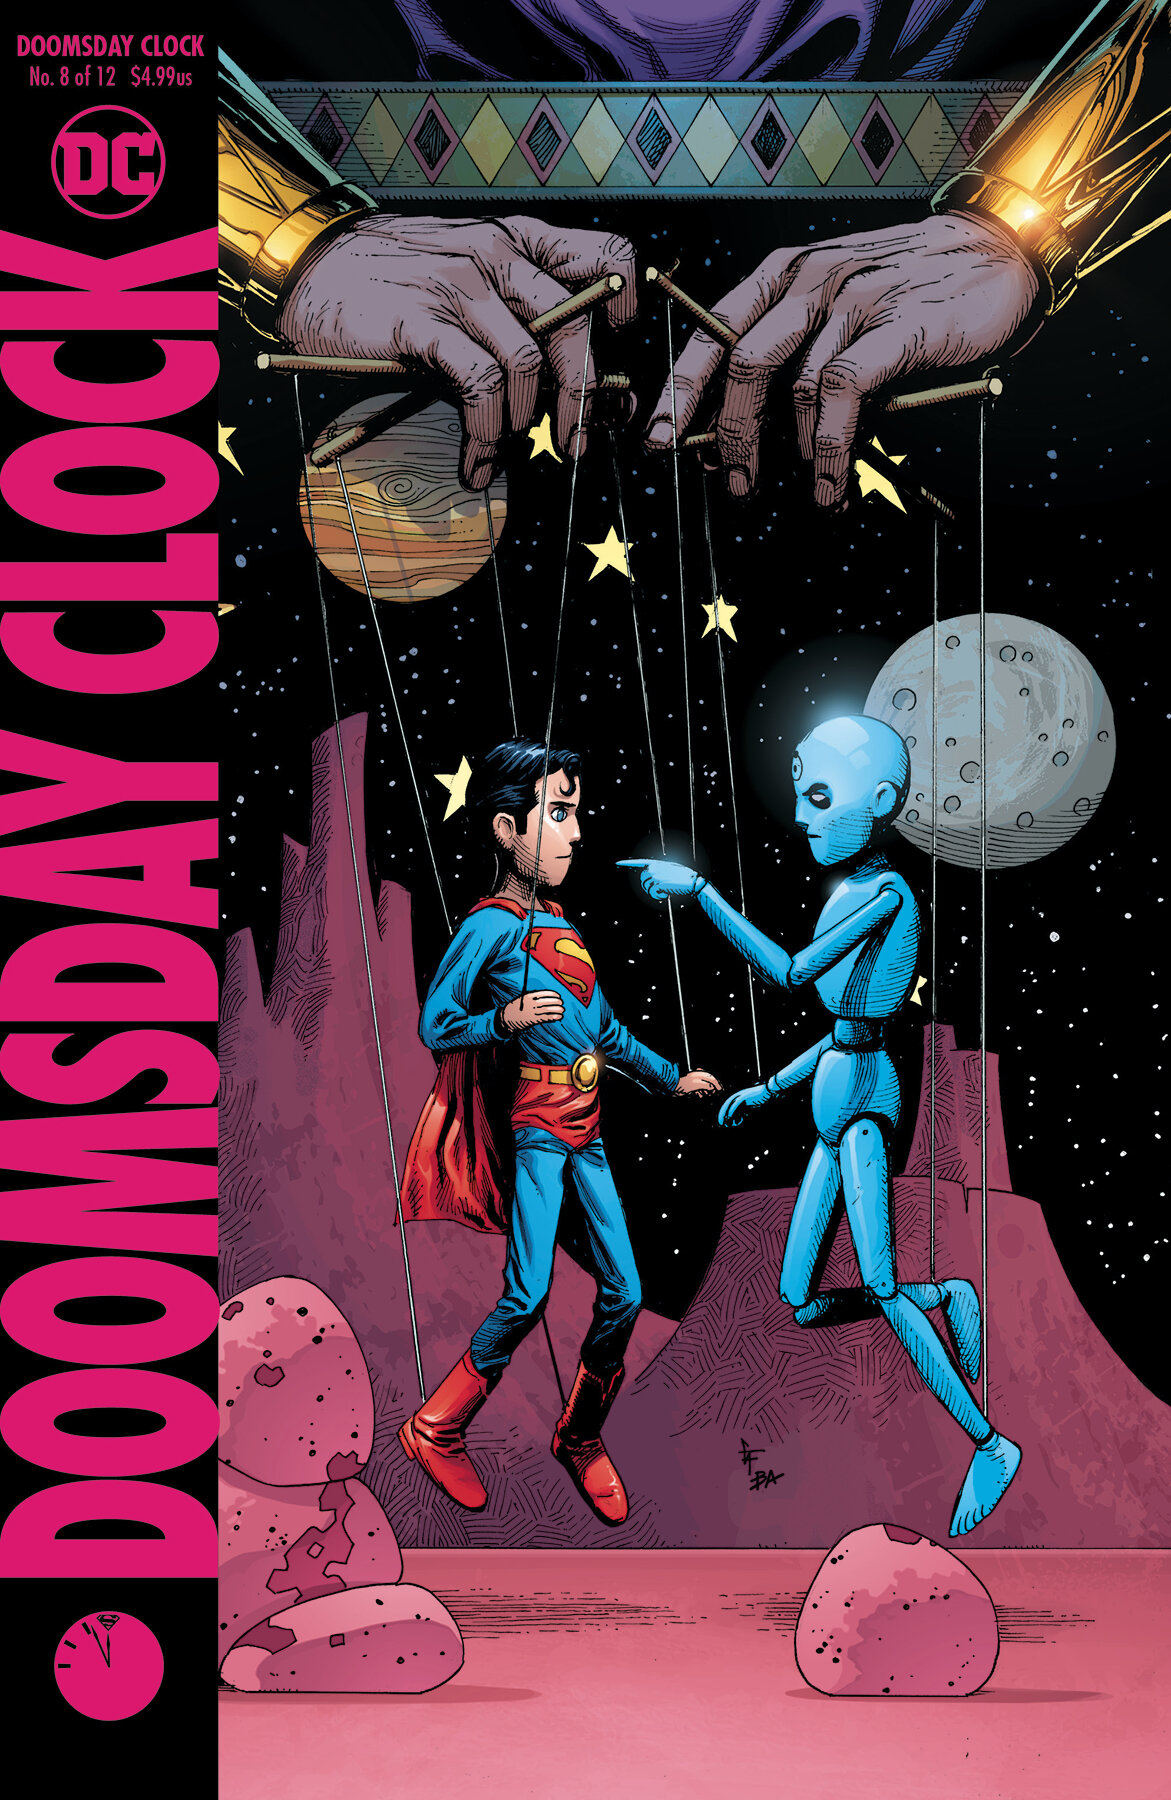 Watchmen Doomsday Clock And Finding Love And Hope In Political